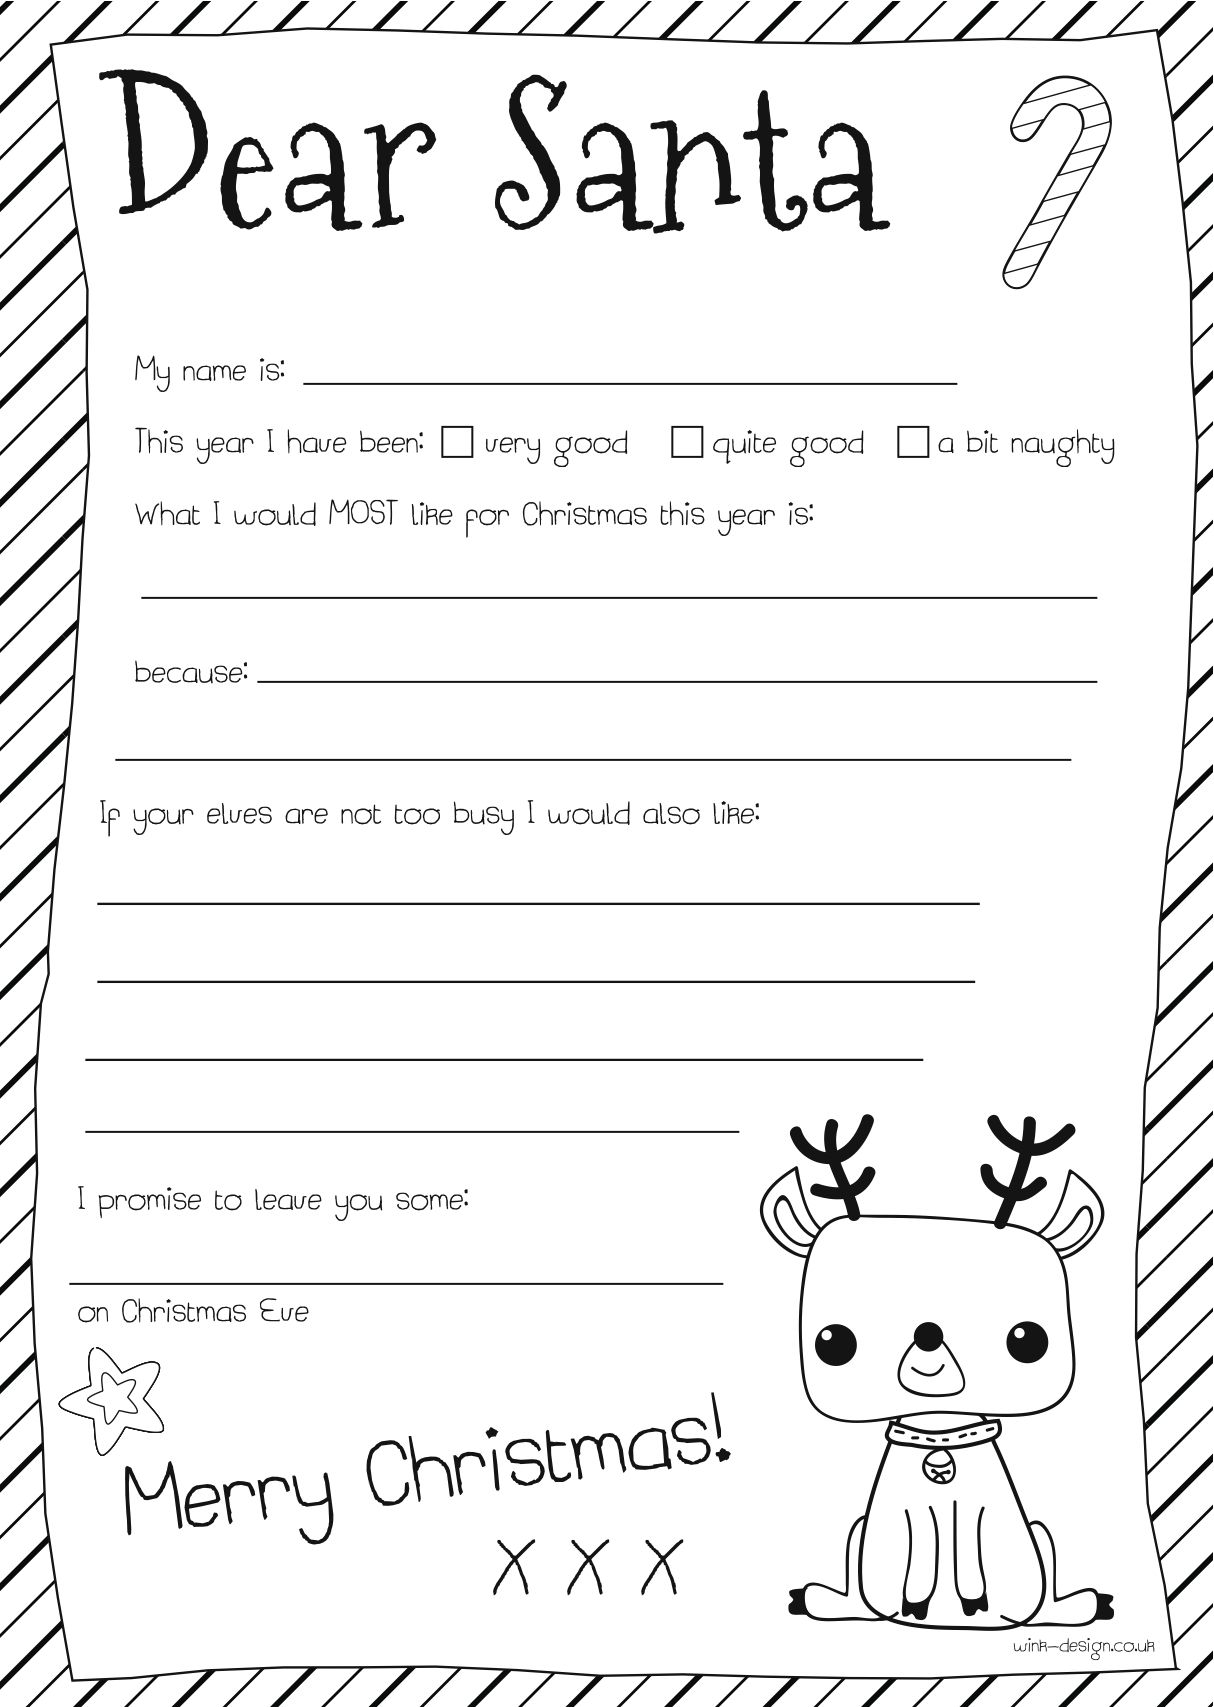 coloring santa letter template style me gorgeous free colour in letter to santa santa letter coloring template